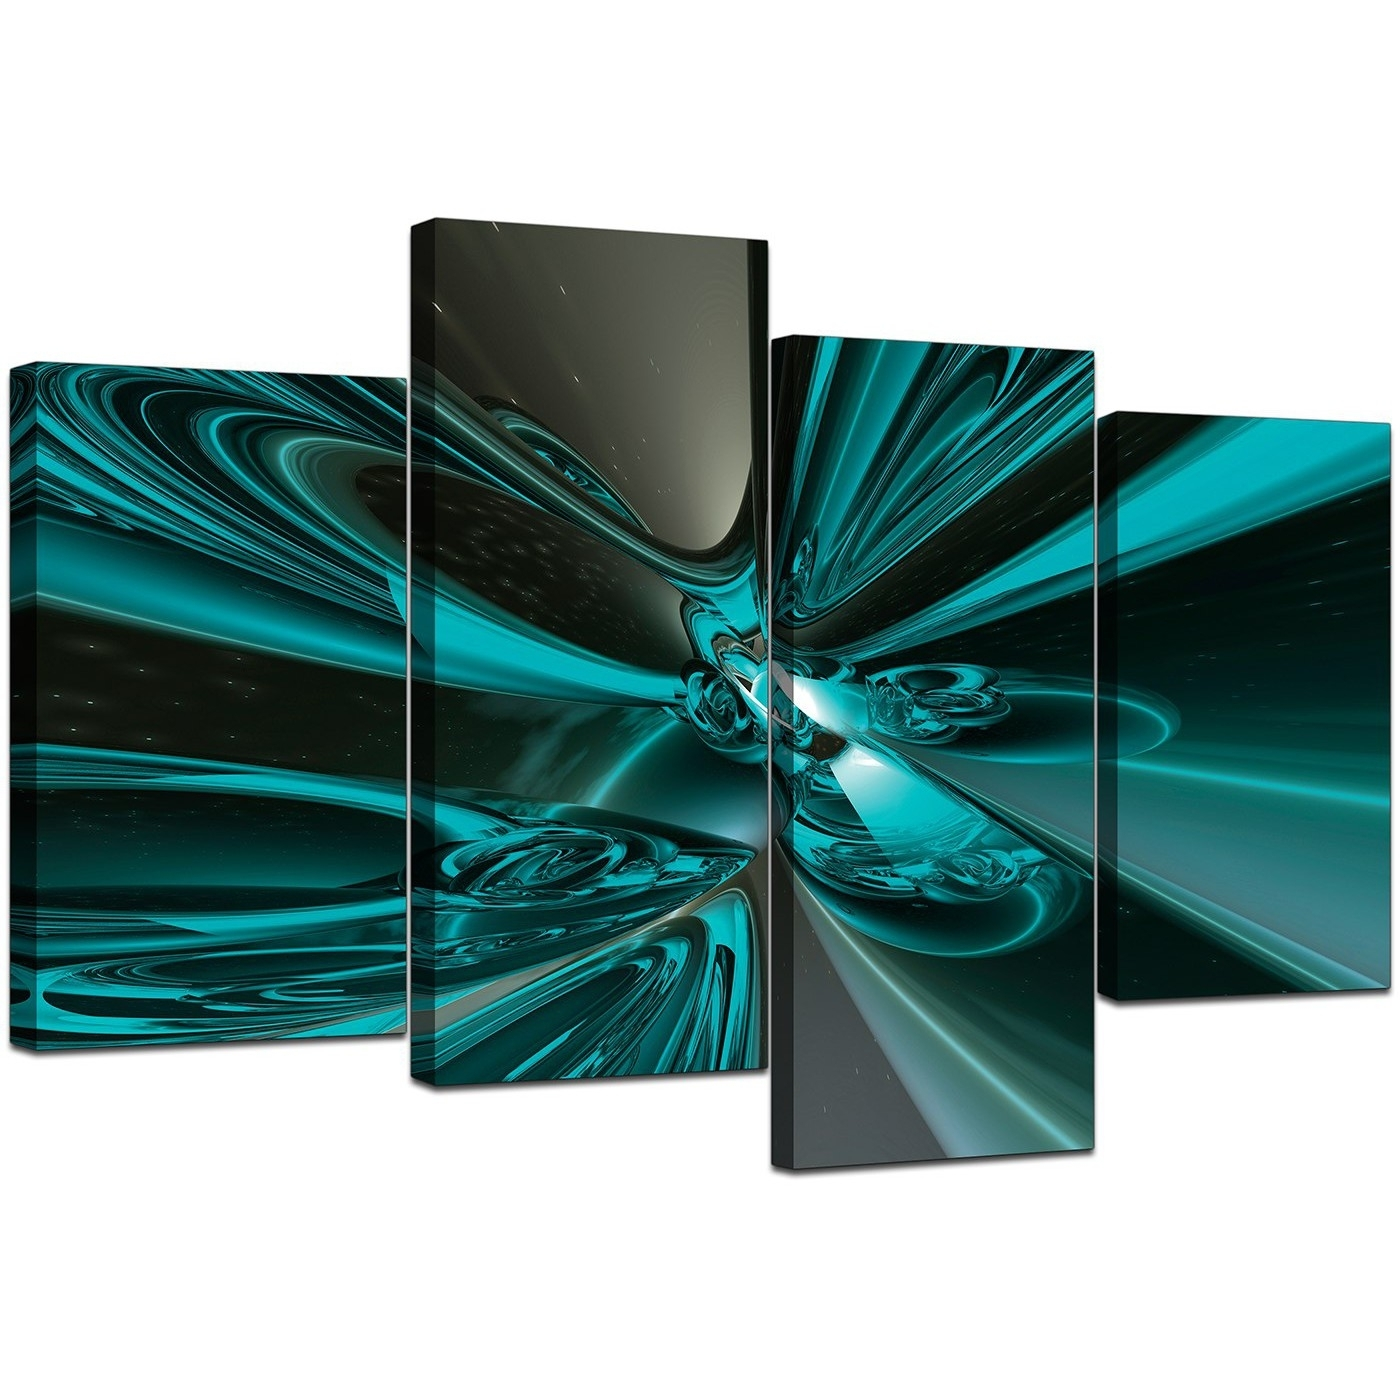 Large Abstract Canvas Art In Teal – For Living Room With Newest Abstract Wall Art Prints (View 21 of 21)